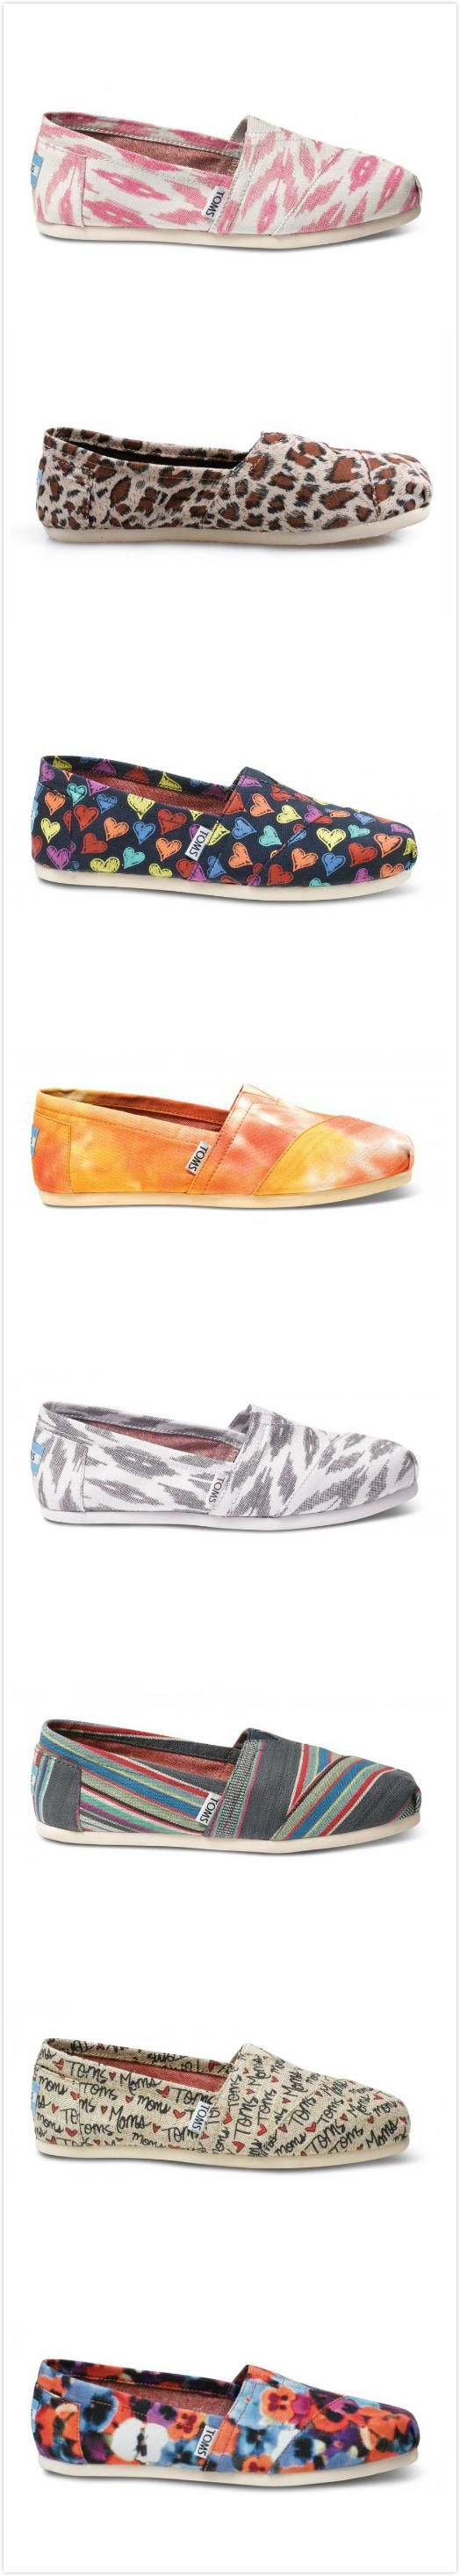 discount site. super cheap! Cheap T-oms shoes outlet and all are brand new!not long time for cheapest